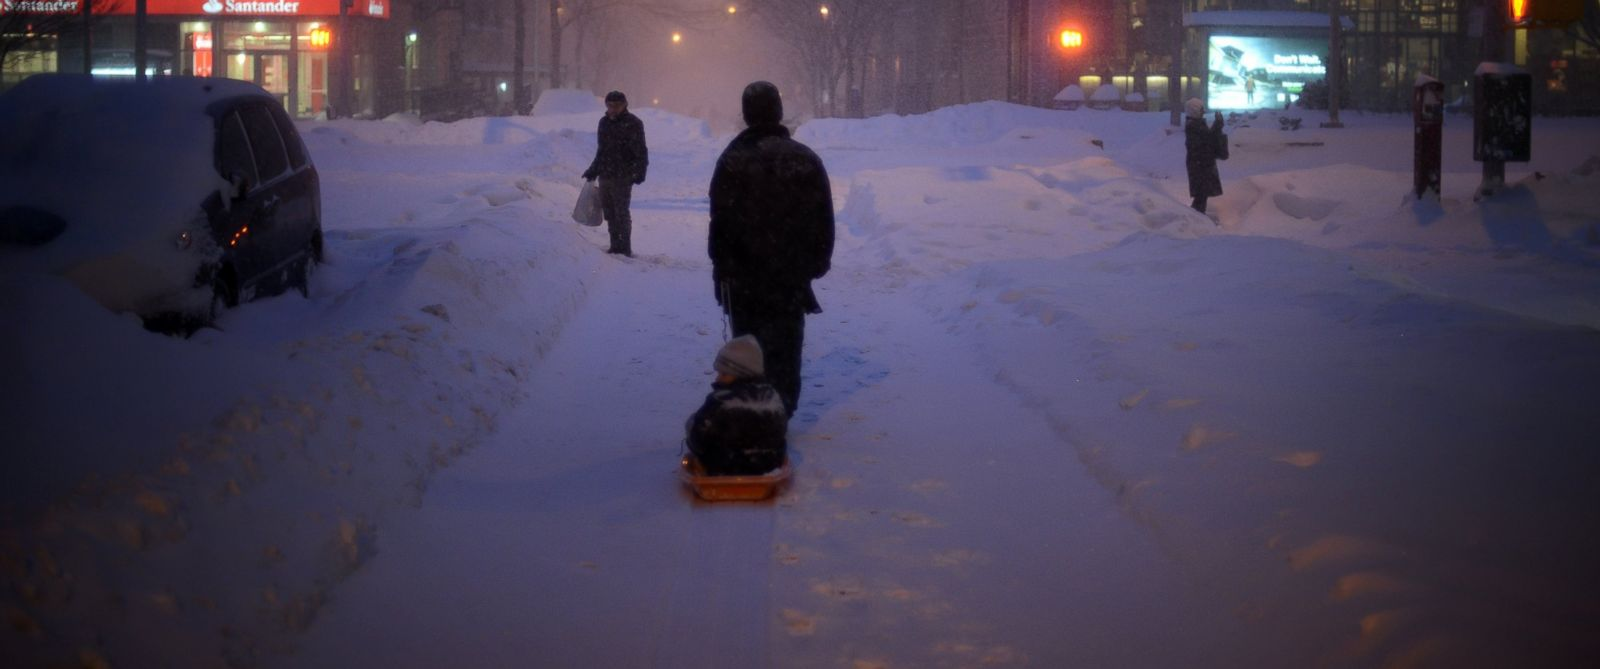 PHOTO:A young child is pulled home along West 82 Street which is covered in snow after a day of constant snow, Jan. 23, 2016, in New York.